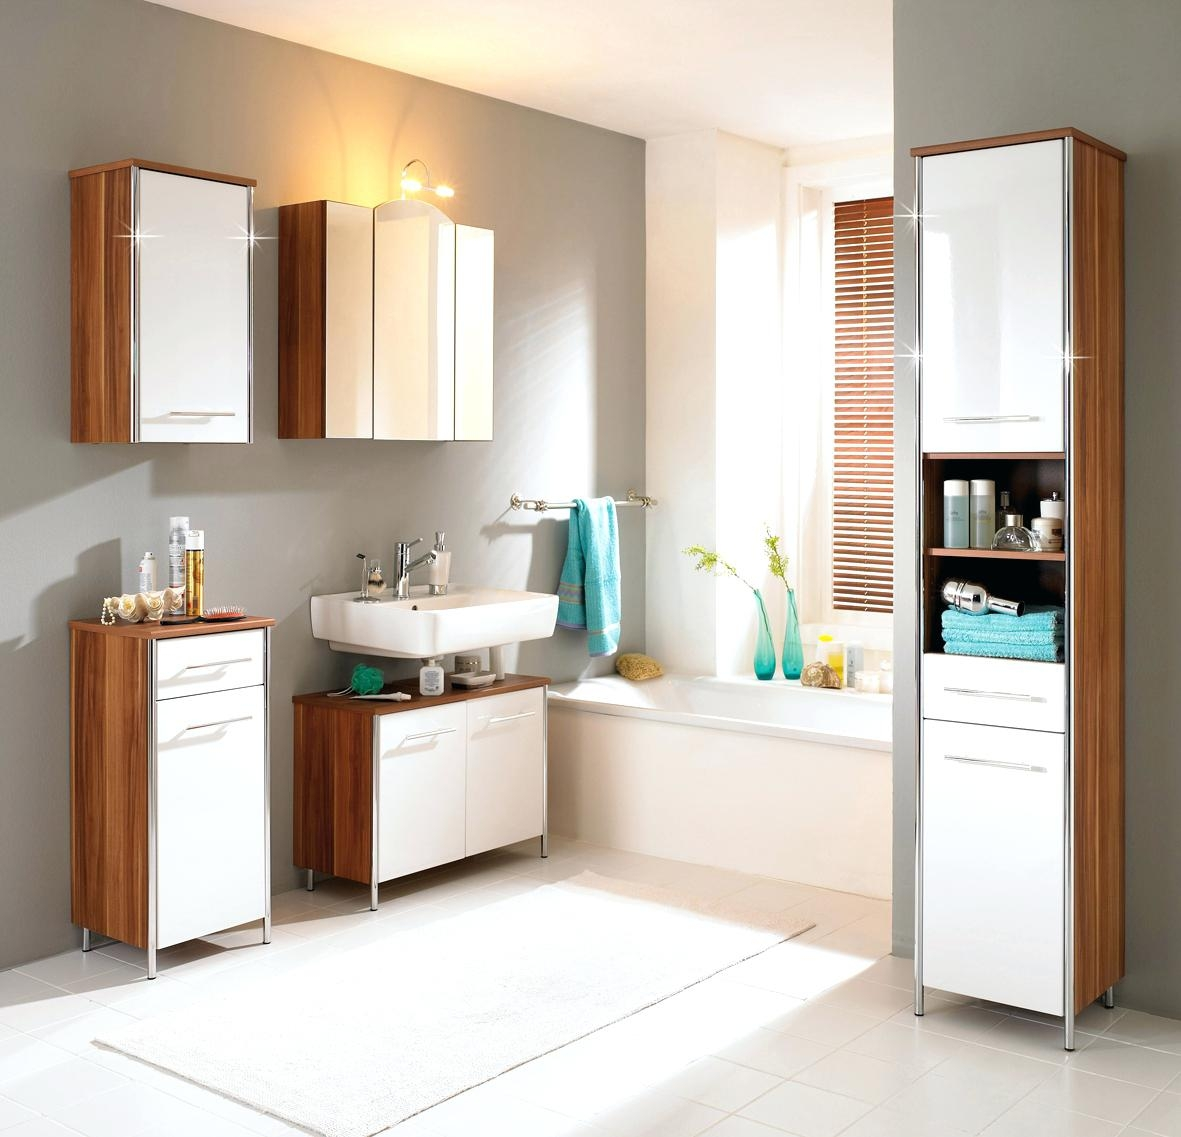 Bathroom Wall Cabinets Ikeabathroom mirrored modern wall cabinet with built in bathtub and